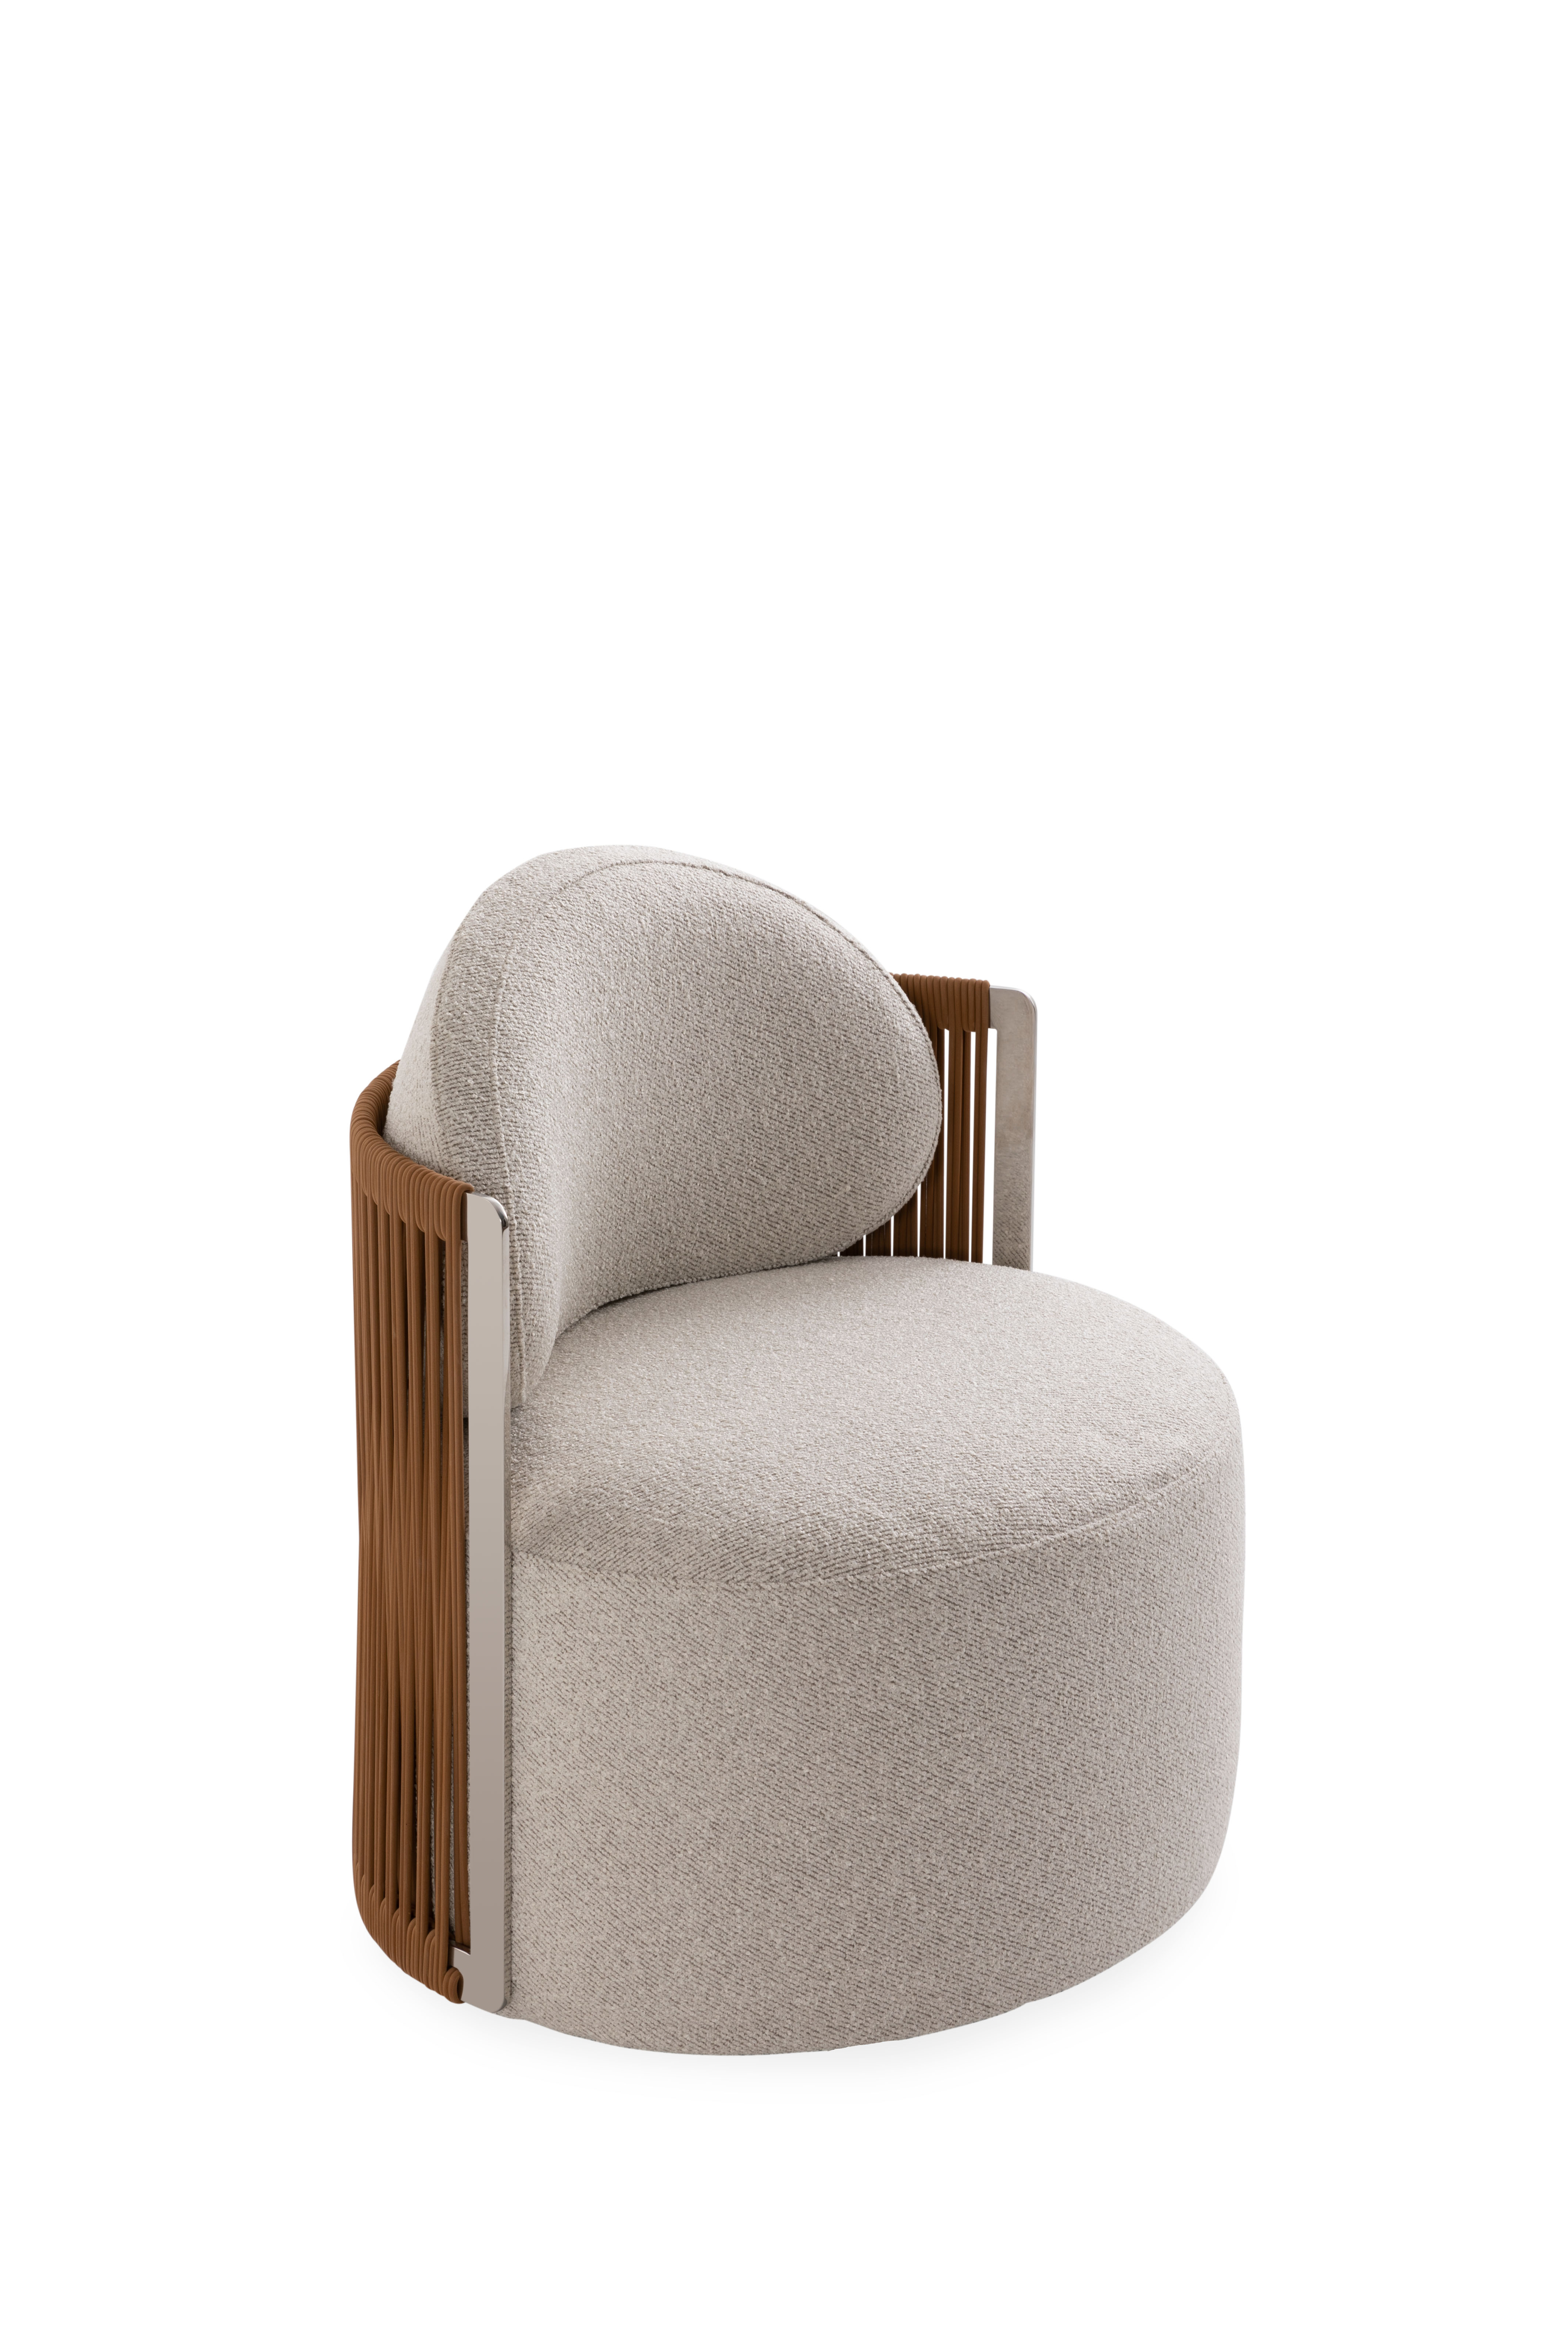 Fendi Casa Thea outdoor armchair.